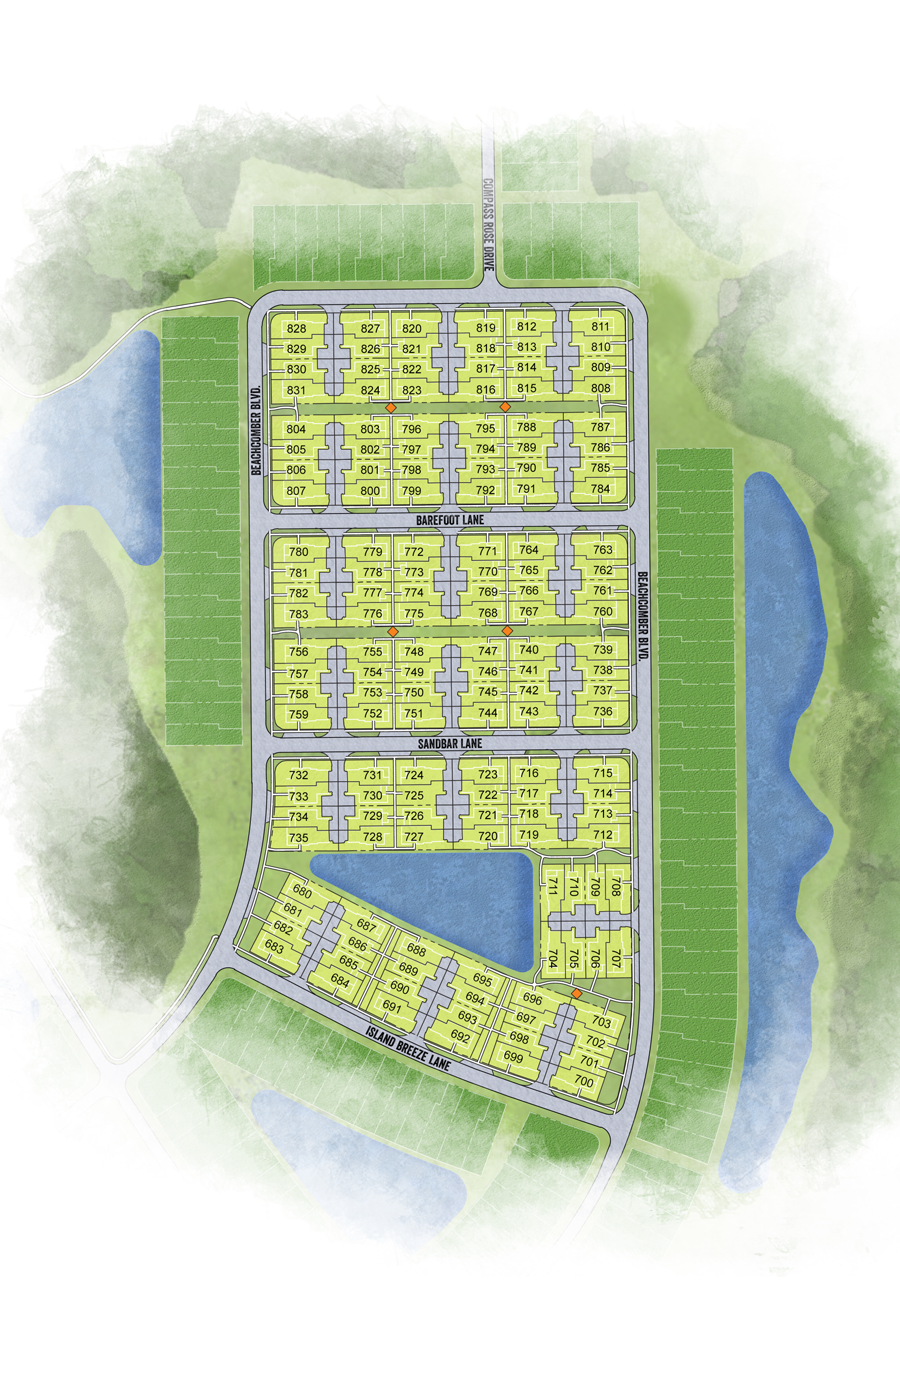 Latitude Margaritaville Hilton Head Plan Conch Cottage site plan and interest